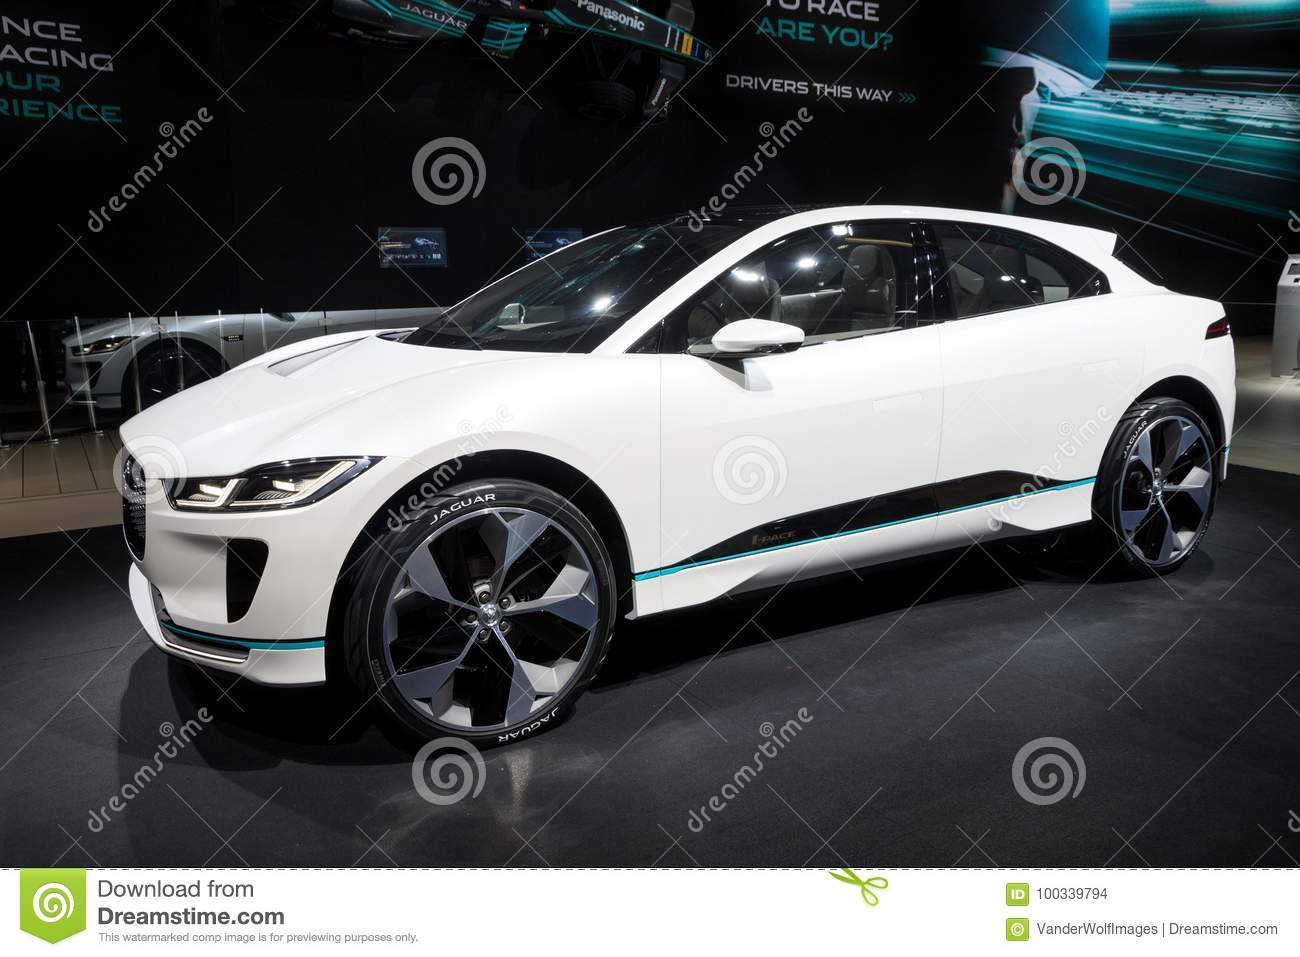 New 2018 Jaguar I Pace Concept Electric Car Editorial Stock Image Image Of Modern Model 100339794